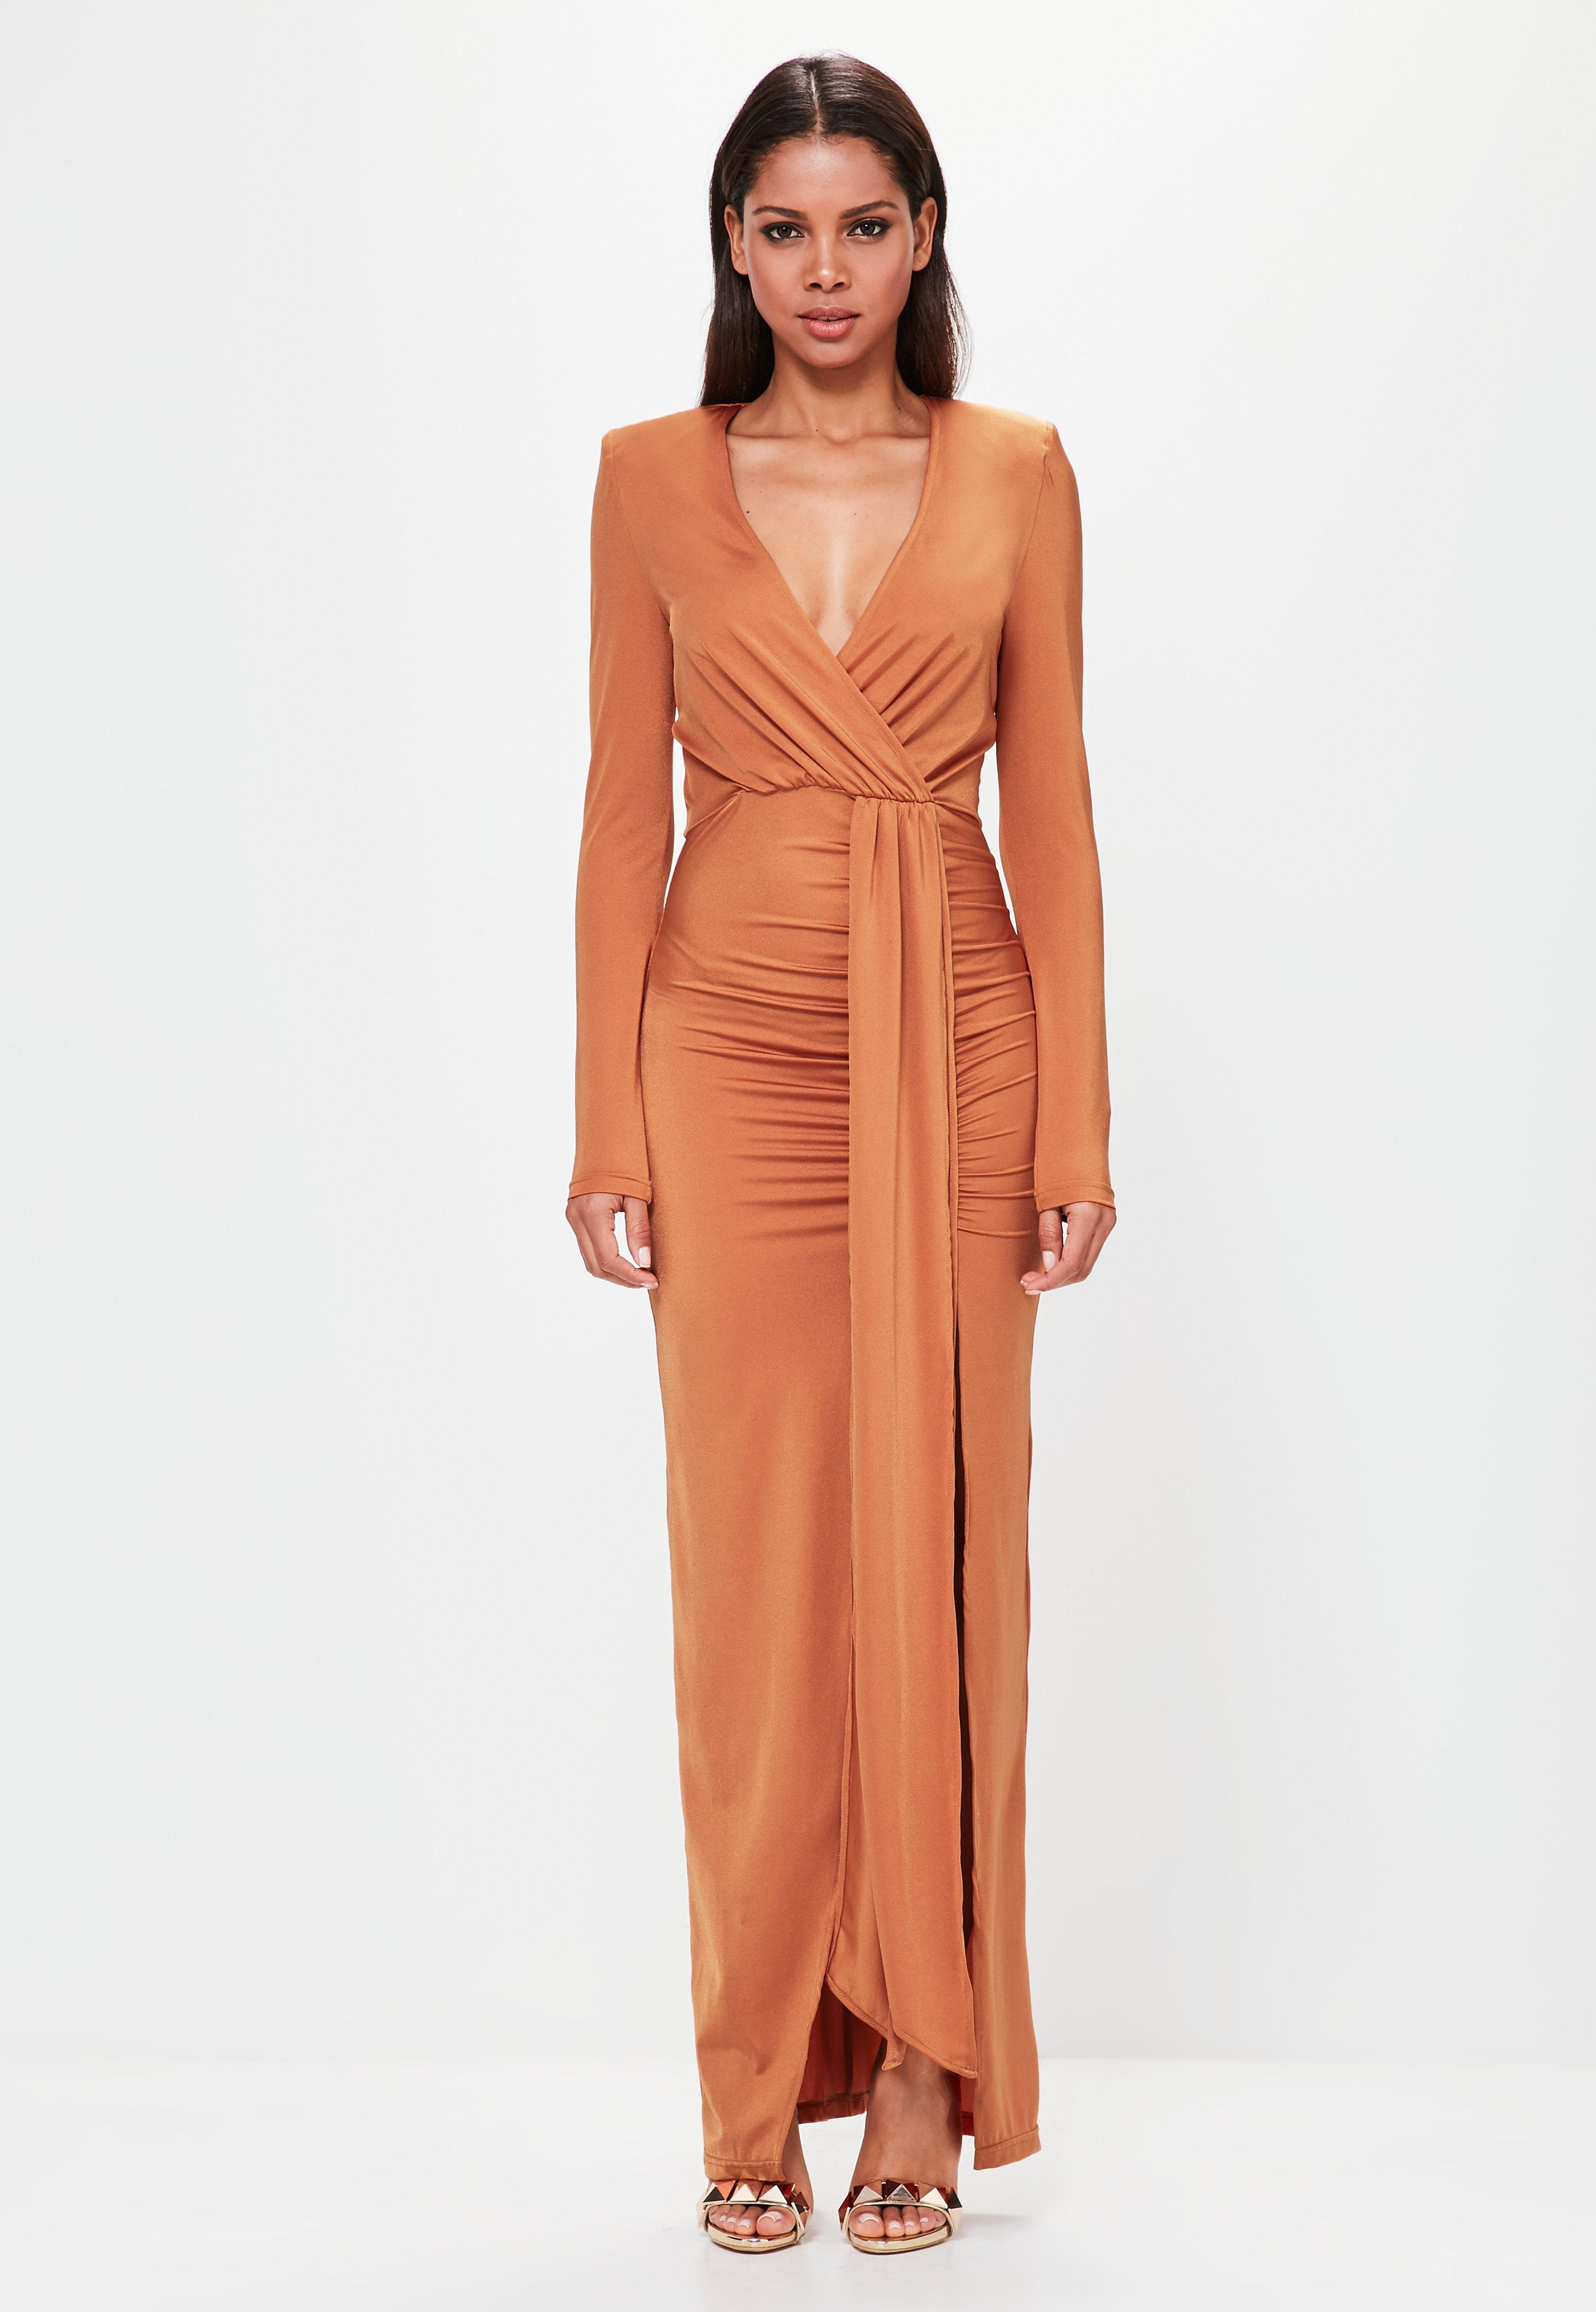 Double-Strap Long Georgette Bridesmaid Wrap Dress. F 45 colors Added to your favorites! David's Bridal. Long Mesh Dress with Cowl Back Detail. F 45 colors Added to your favorites! David's Bridal. Long One-Shoulder Crinkle Chiffon Dress. F